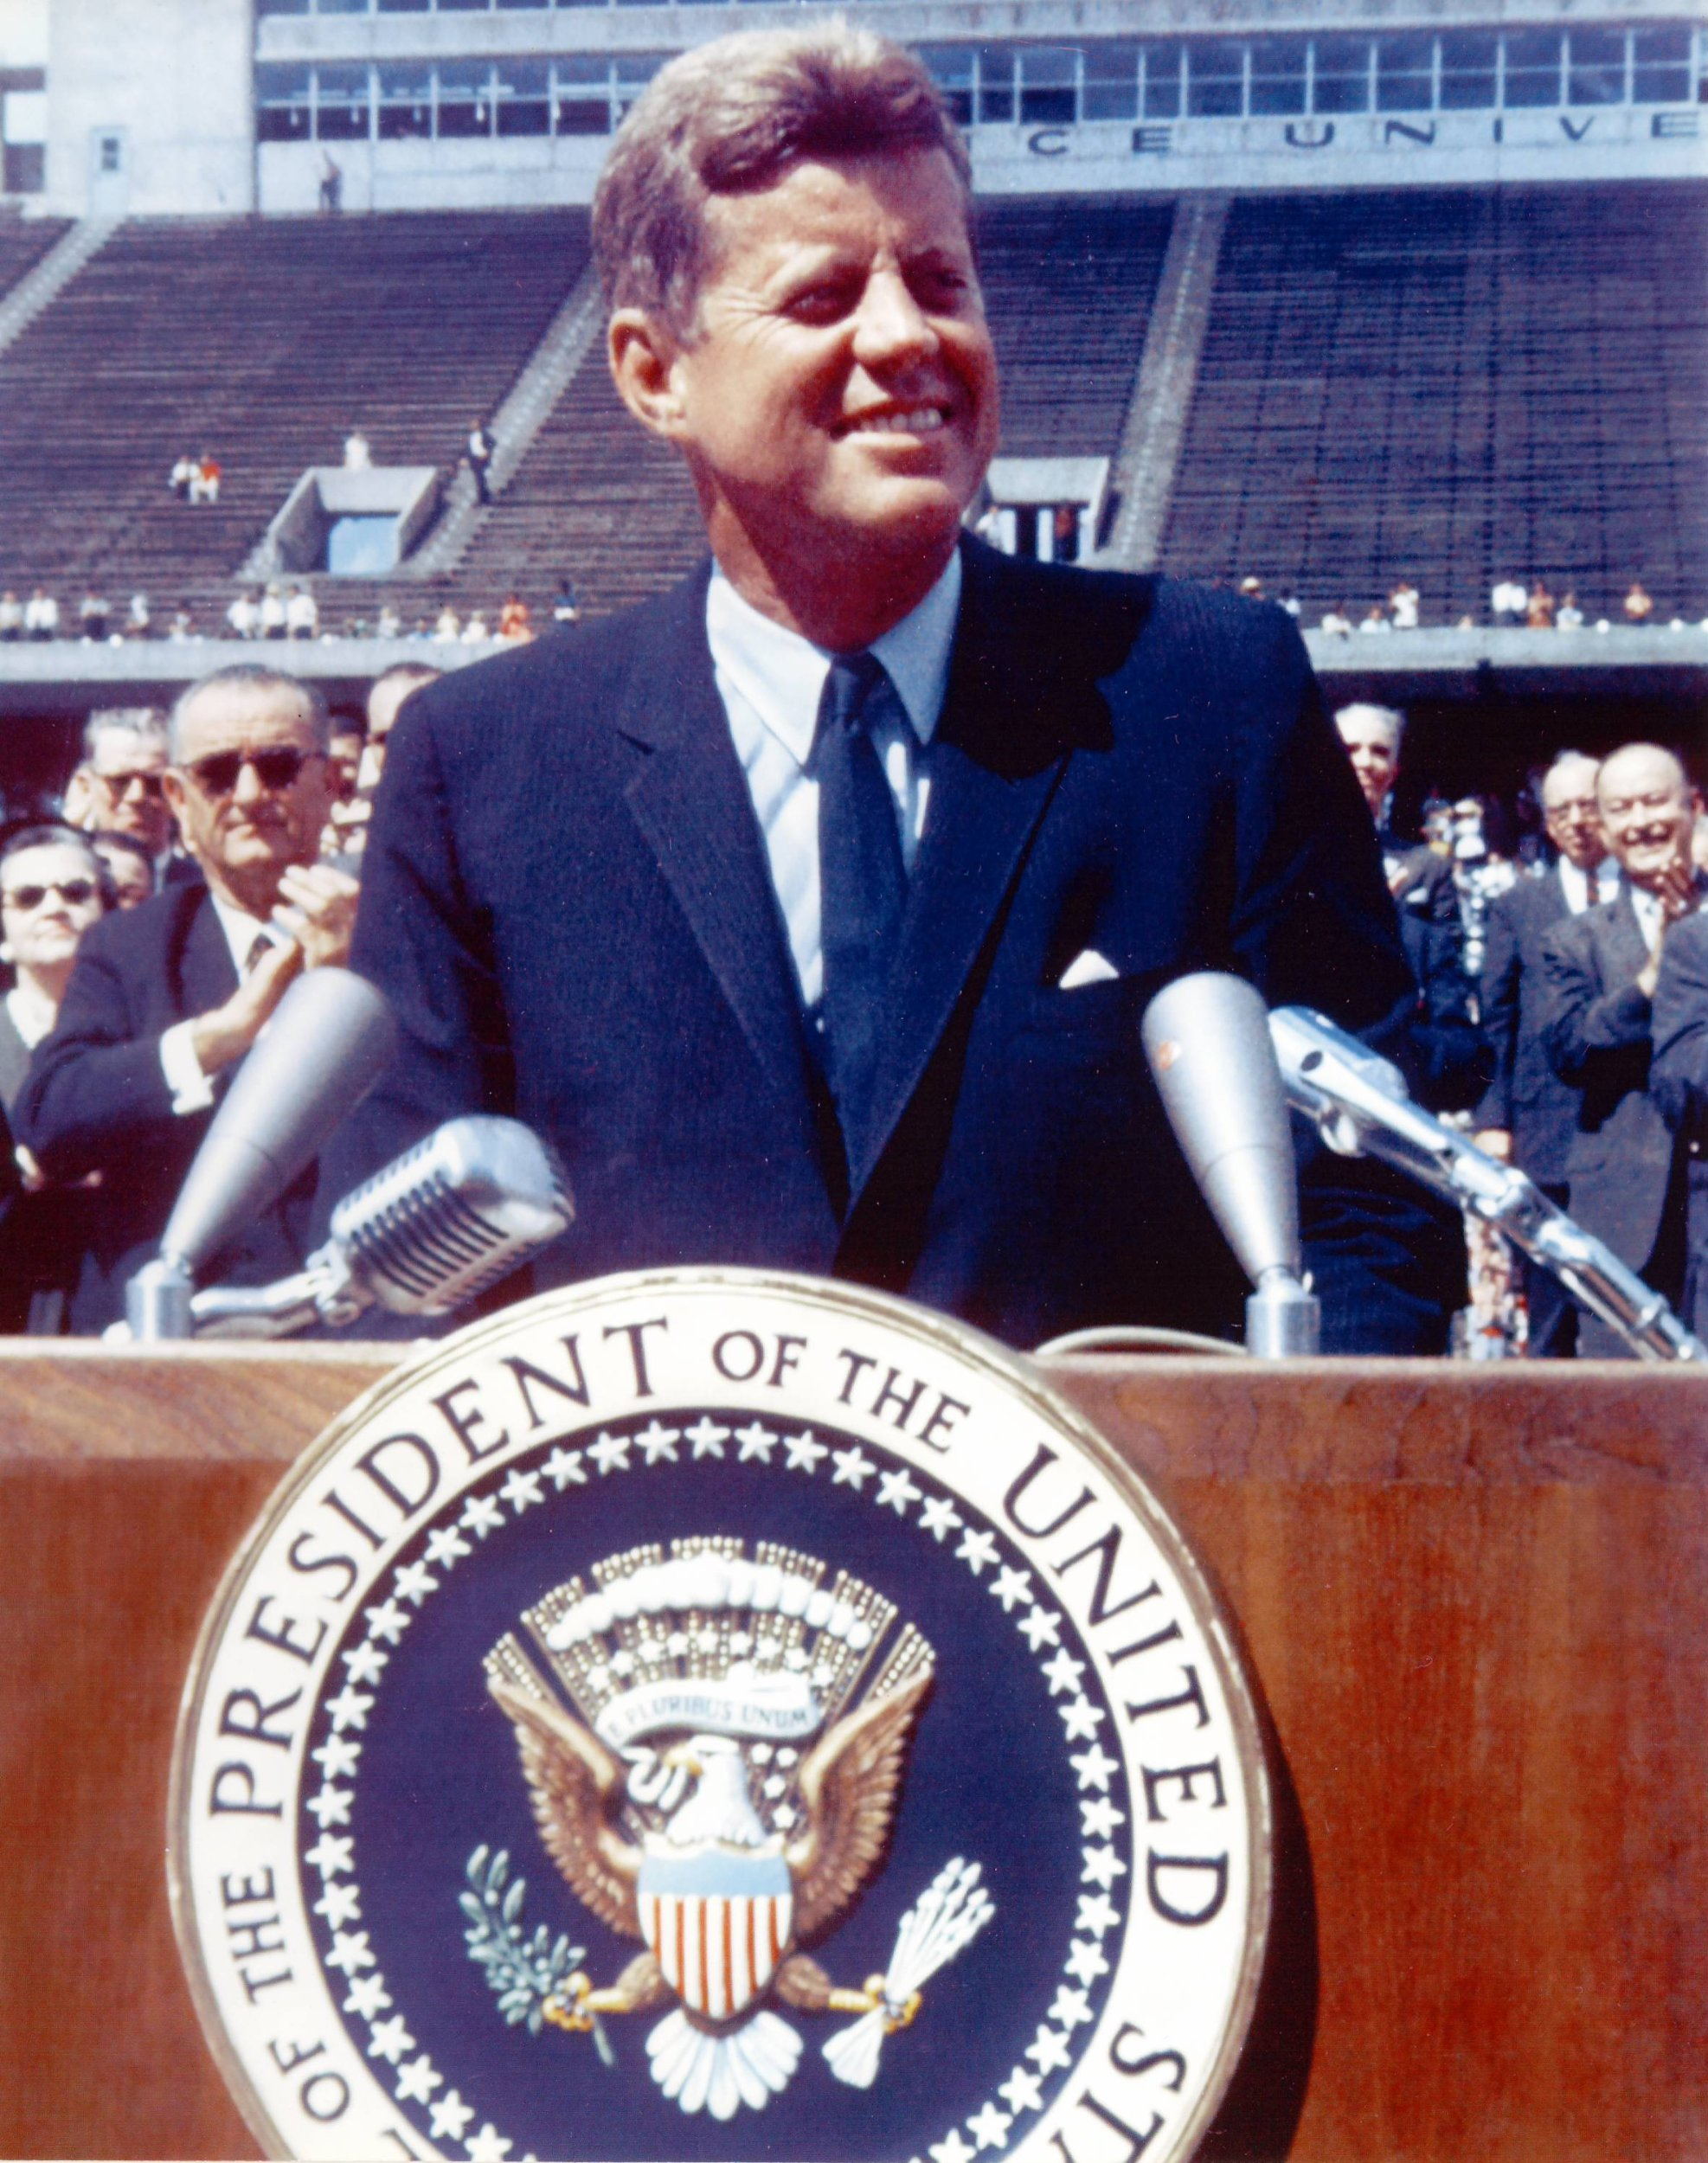 the life and political career of president john f kennedy Sen ted kennedy has died of cancer at age 77 kennedy, the 'liberal lion' of the senate, is the youngest brother of the late president john f kennedy and sen robert f kennedy edward m.